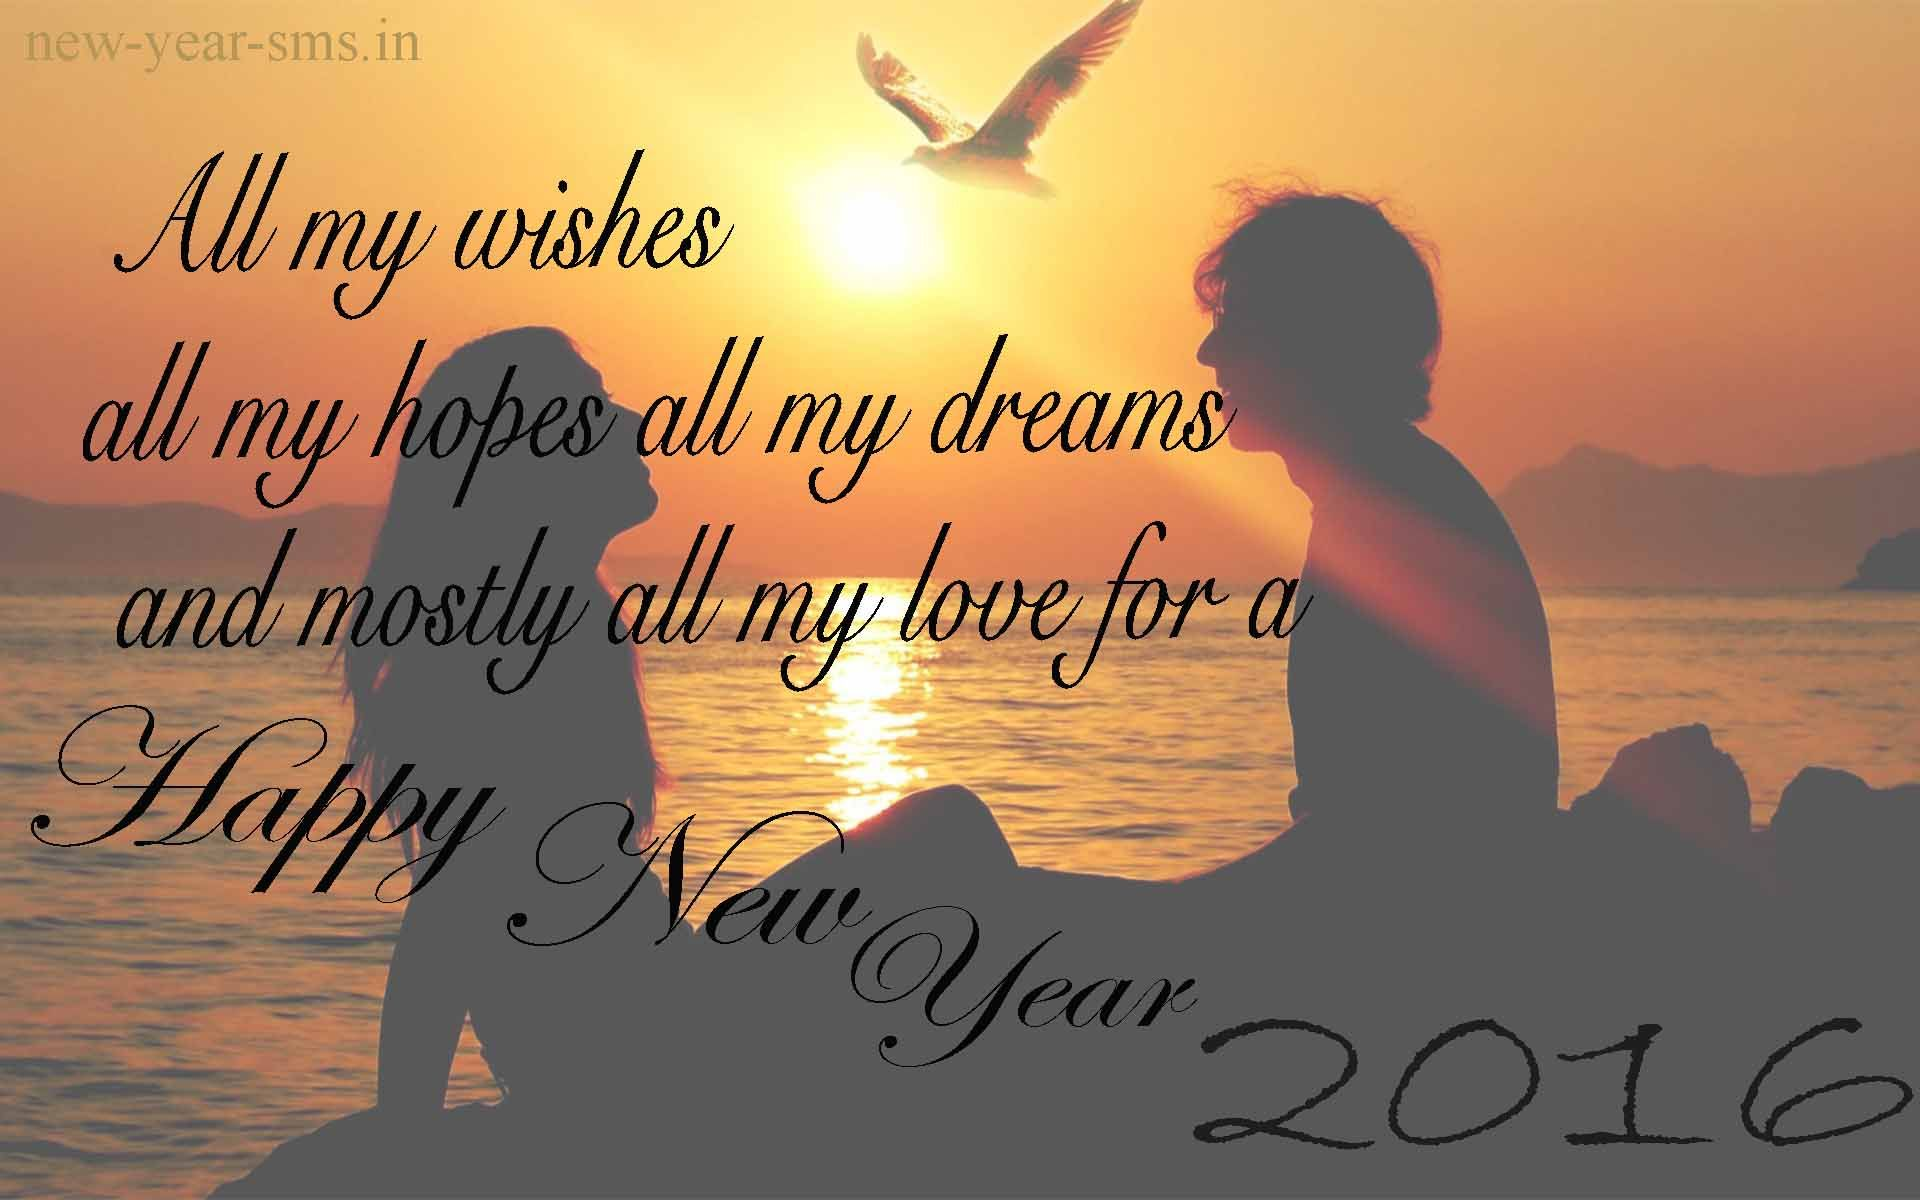 new year wallpaper for love | Happy new year 2016, Happy ...